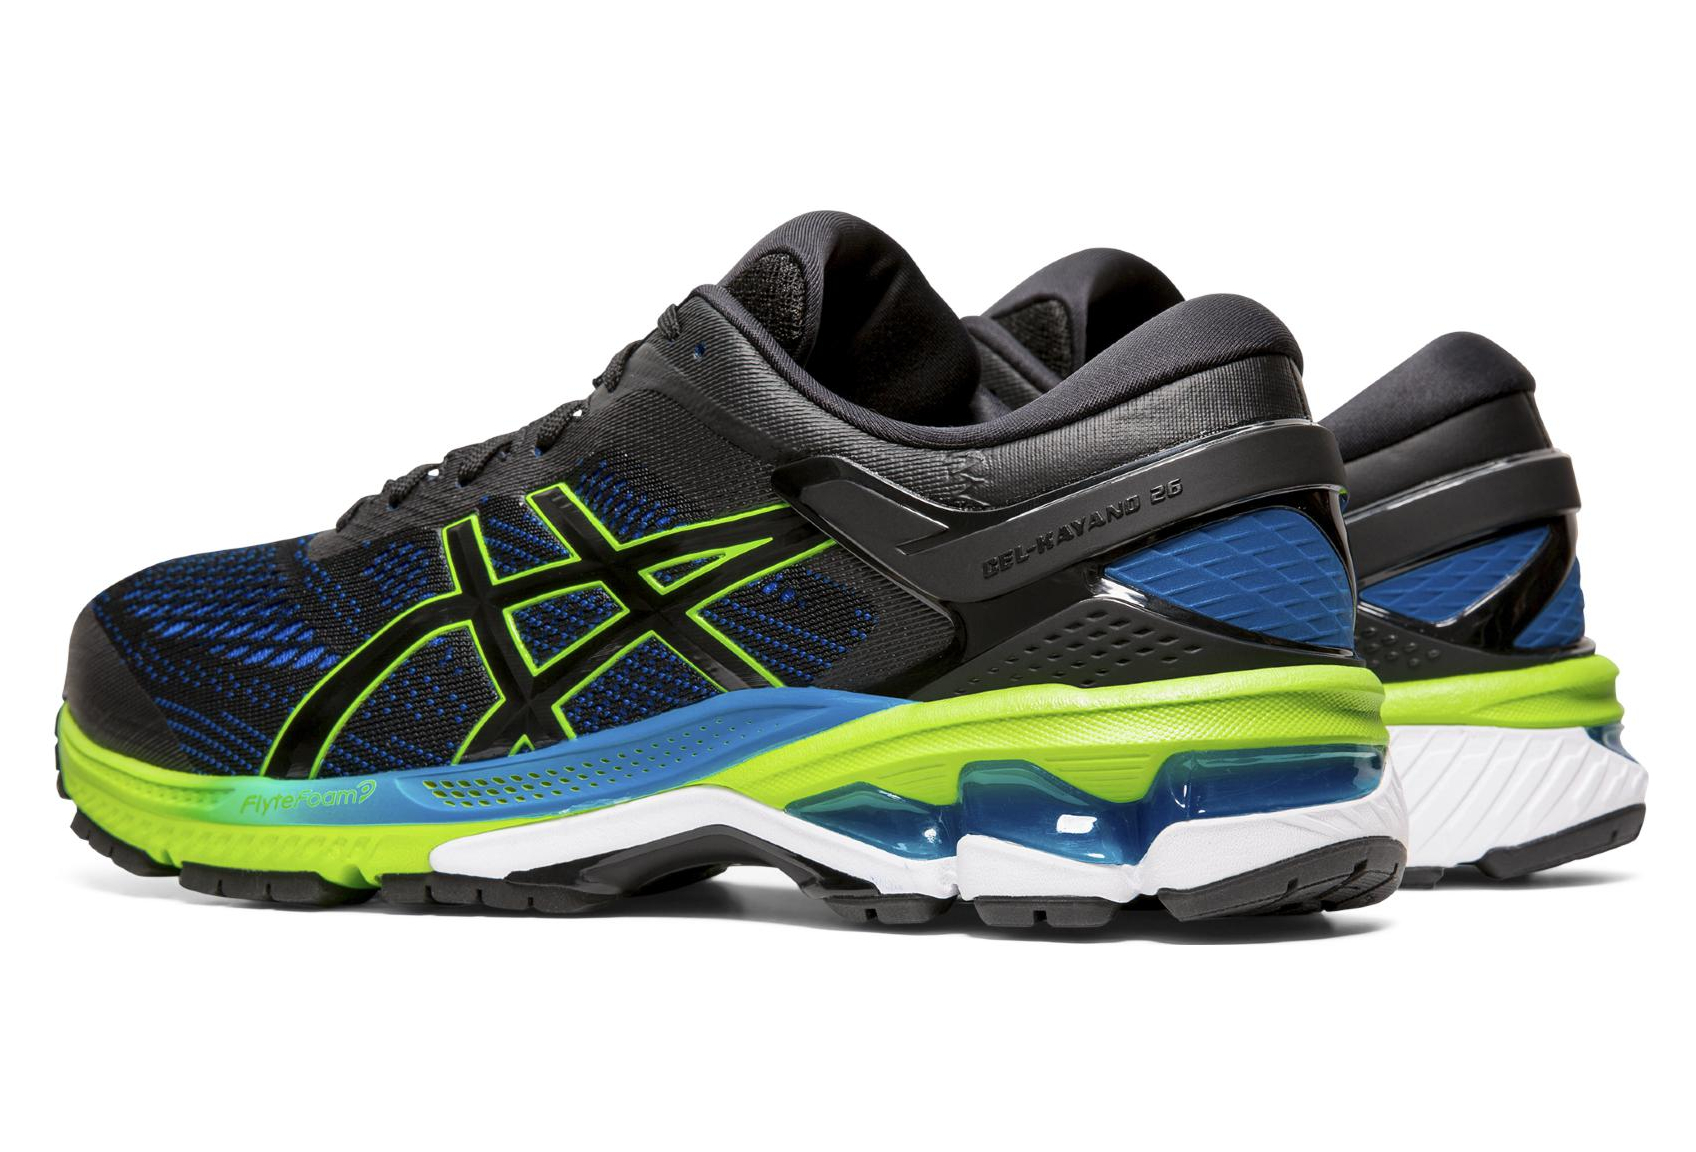 Asics Gel Kayano 26 Black Blue Green Men